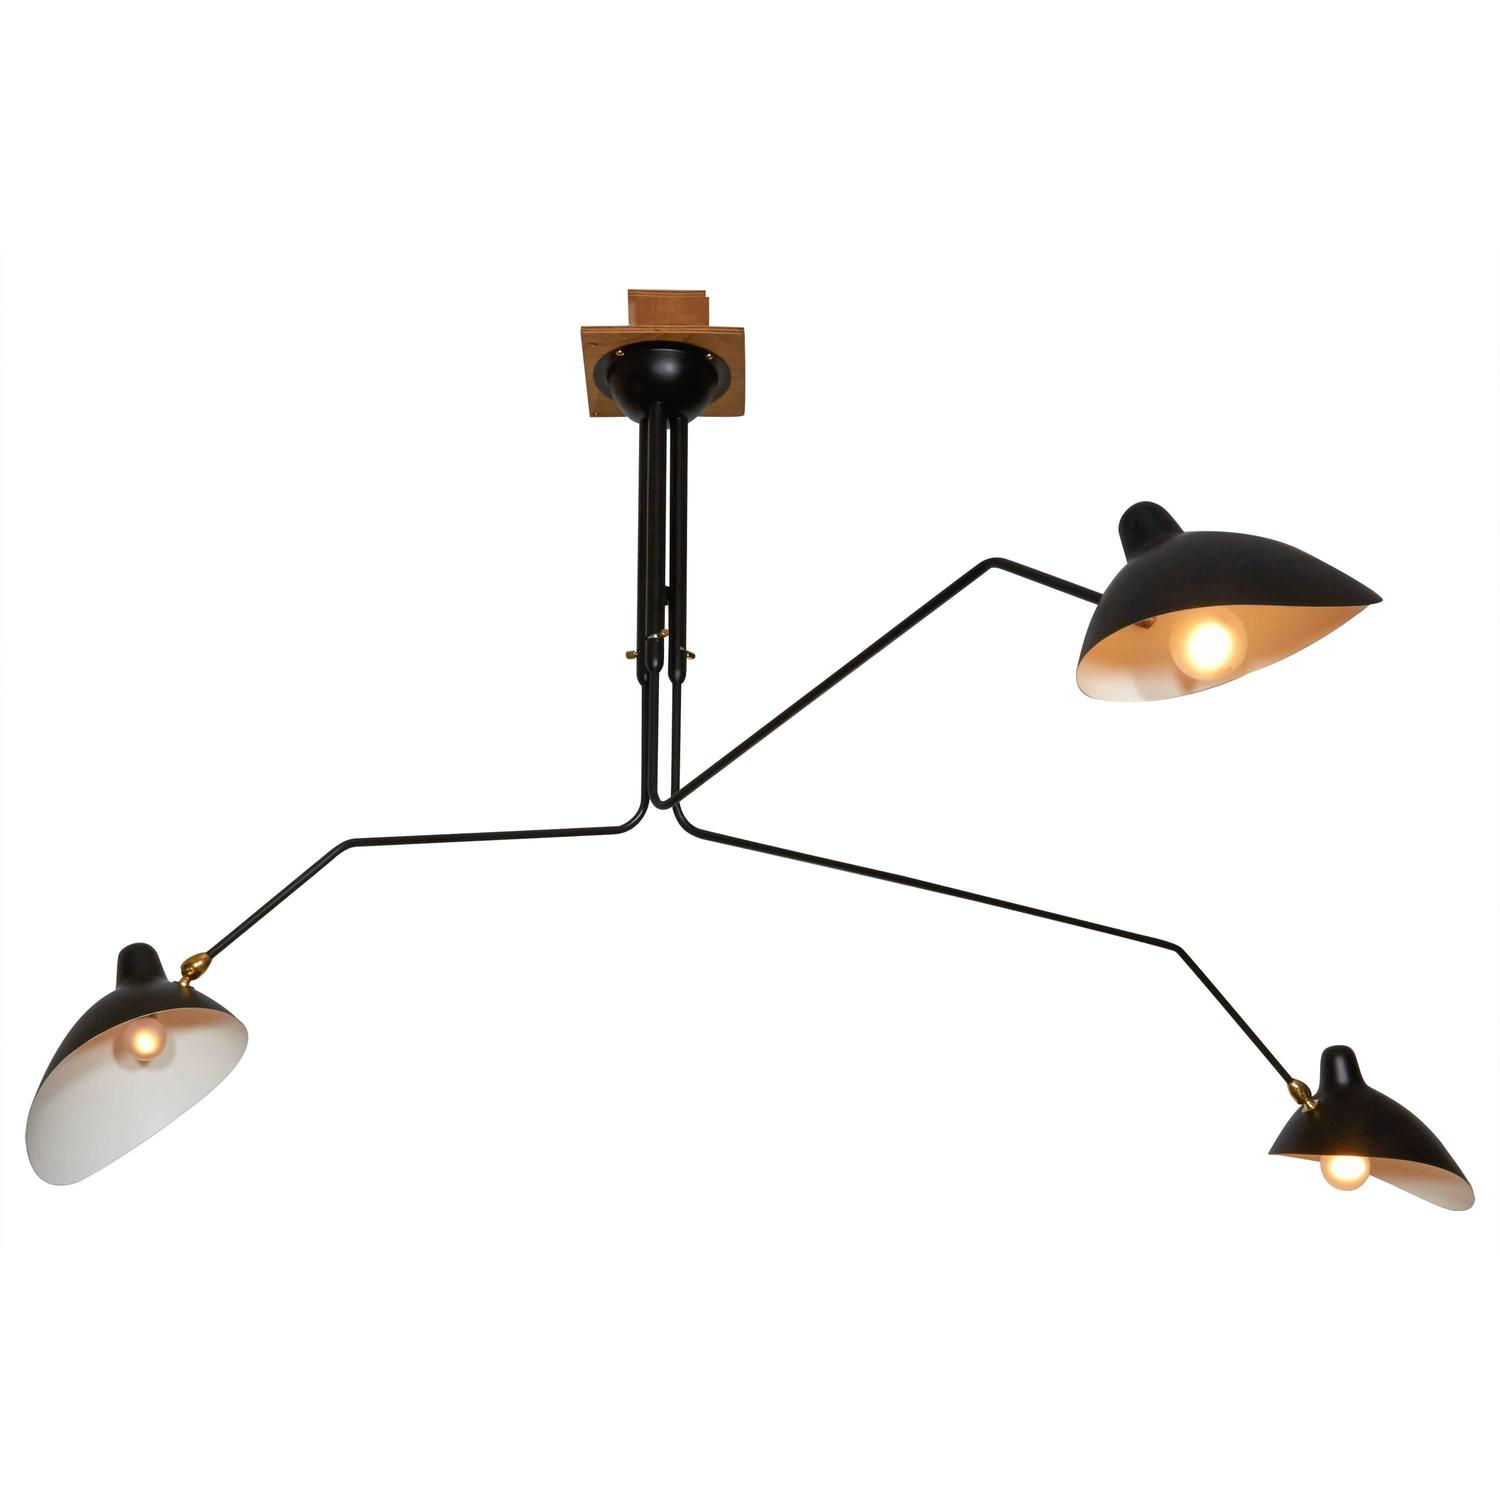 Classic French Three-Armed Ceiling Light For Sale At 1stdibs